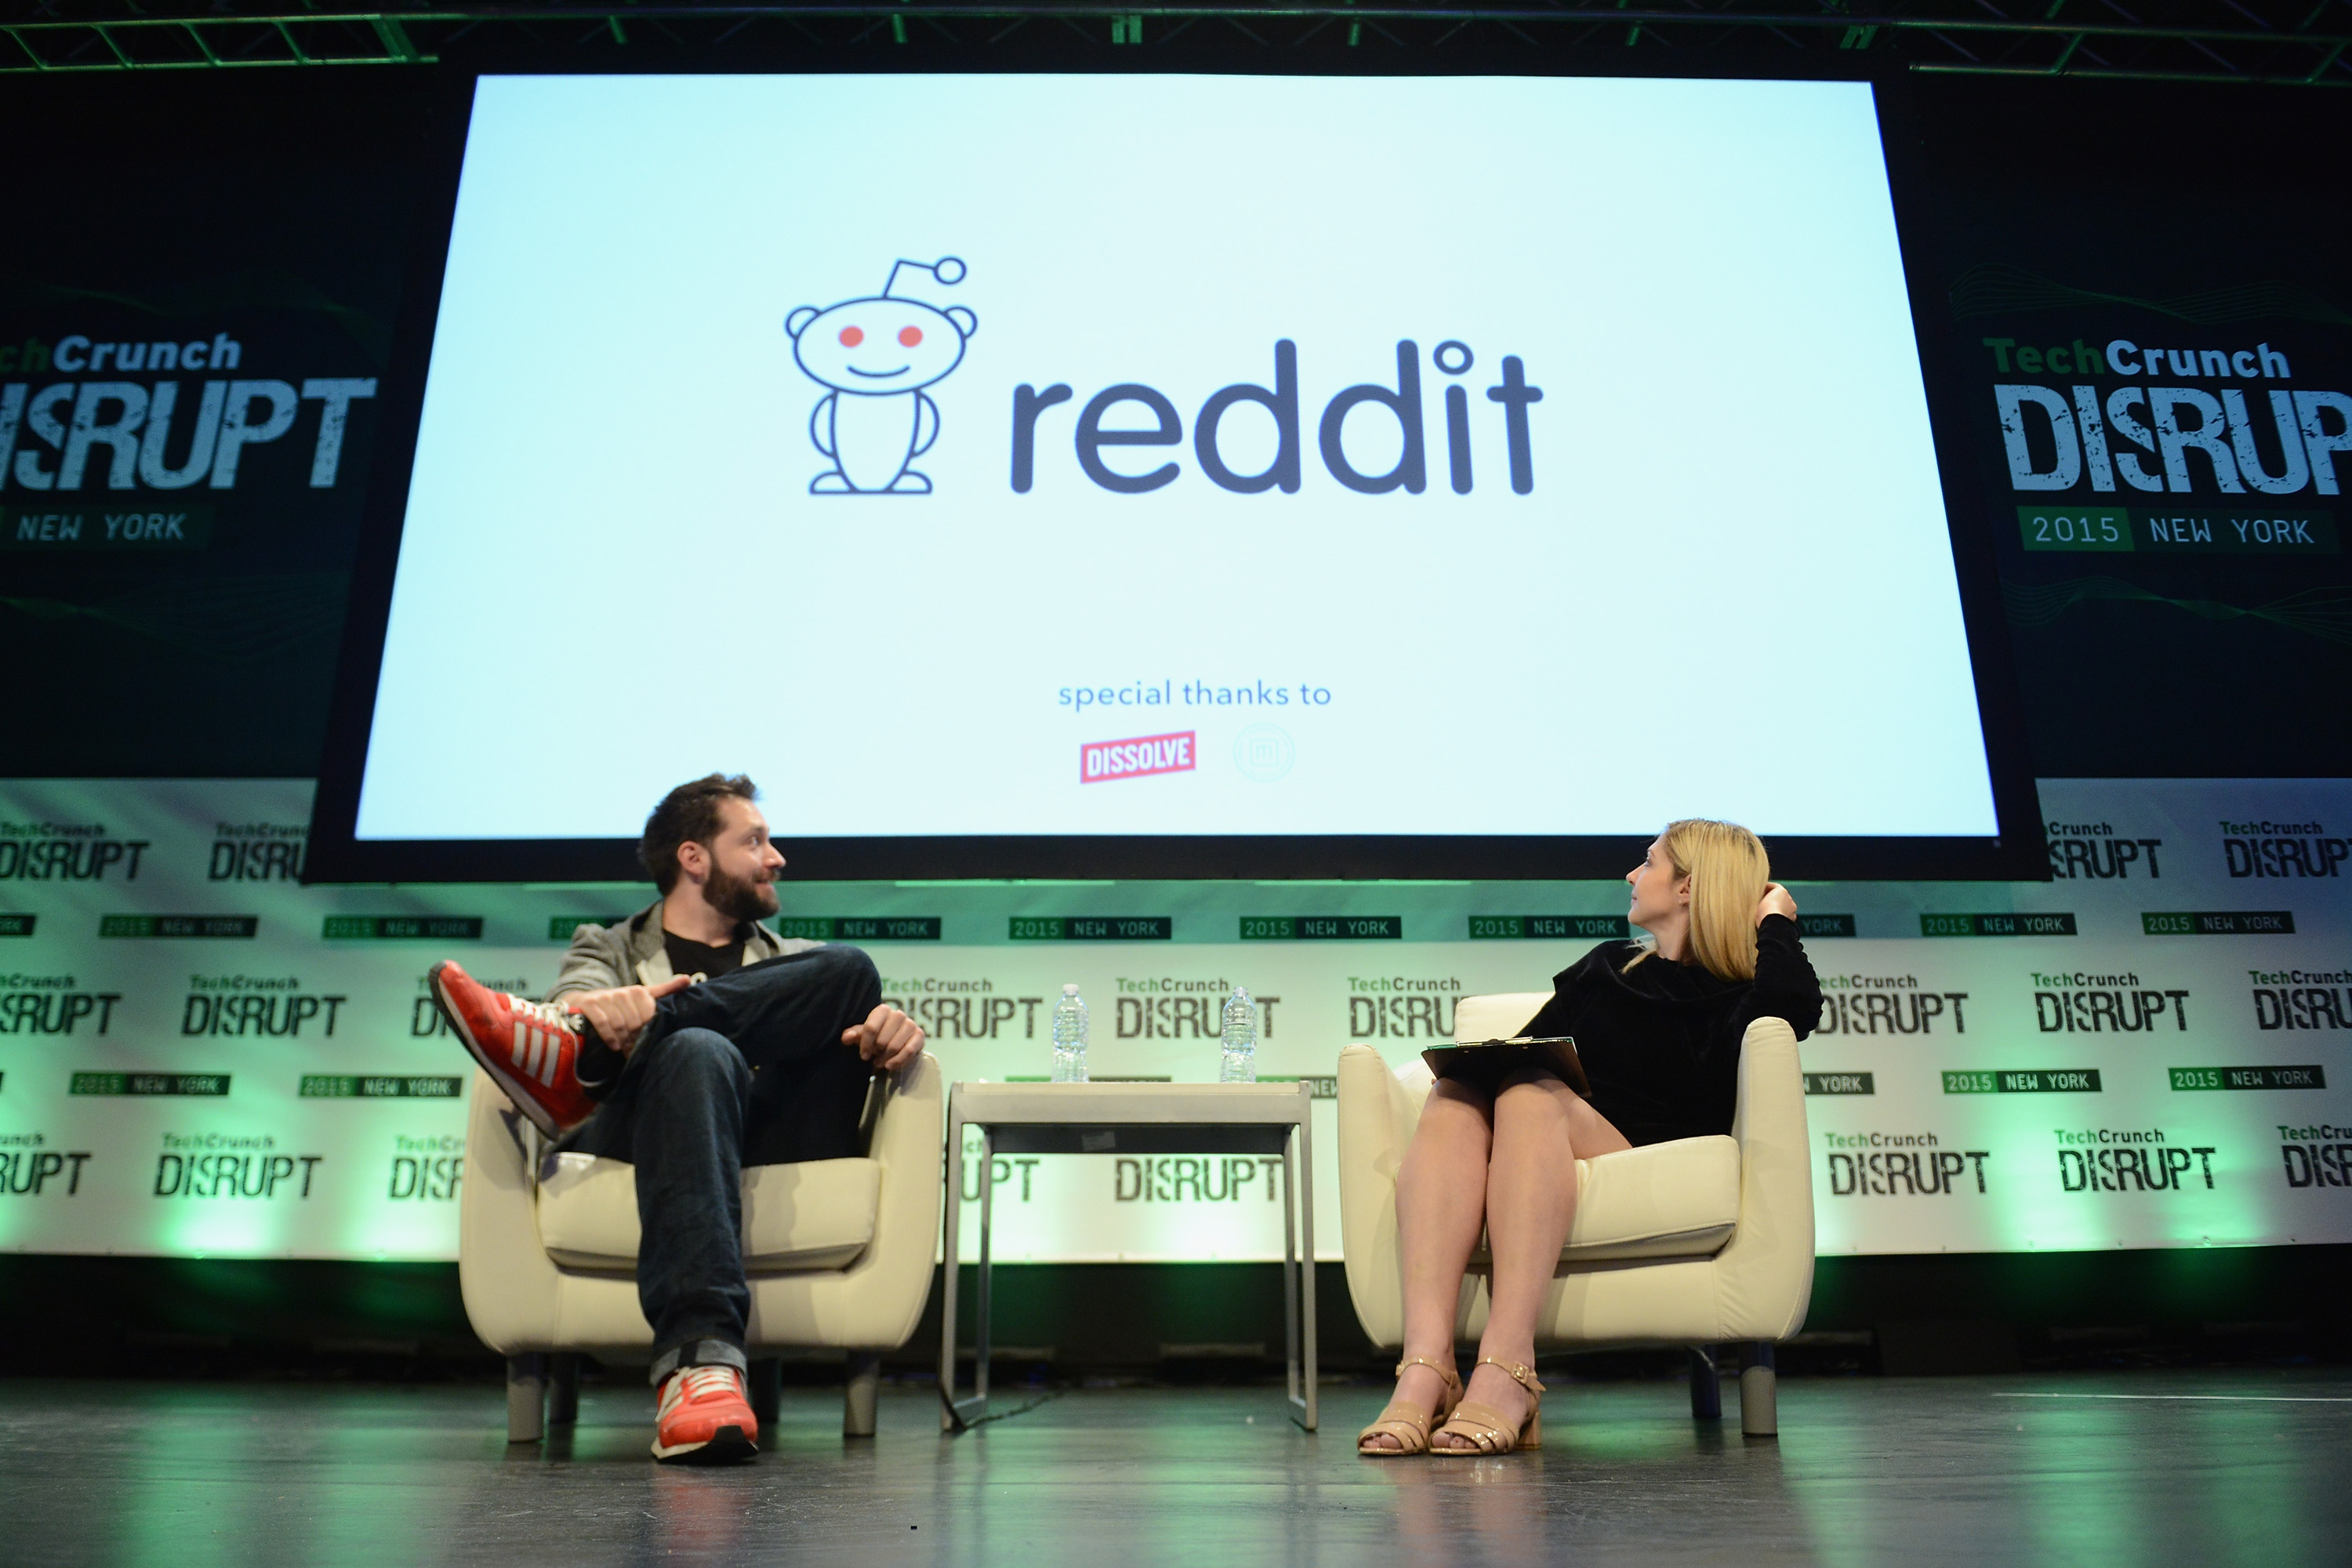 Co-Founder and Executive Chair of Reddit, and Partner at Y Combinator, Alexis Ohanian (L) and co-editor at TechCrunch, Alexia Tsotsis appear onstage during TechCrunch Disrupt NY 2015 - Day 3 at The Manhattan Center on May 6, 2015 in New York City.